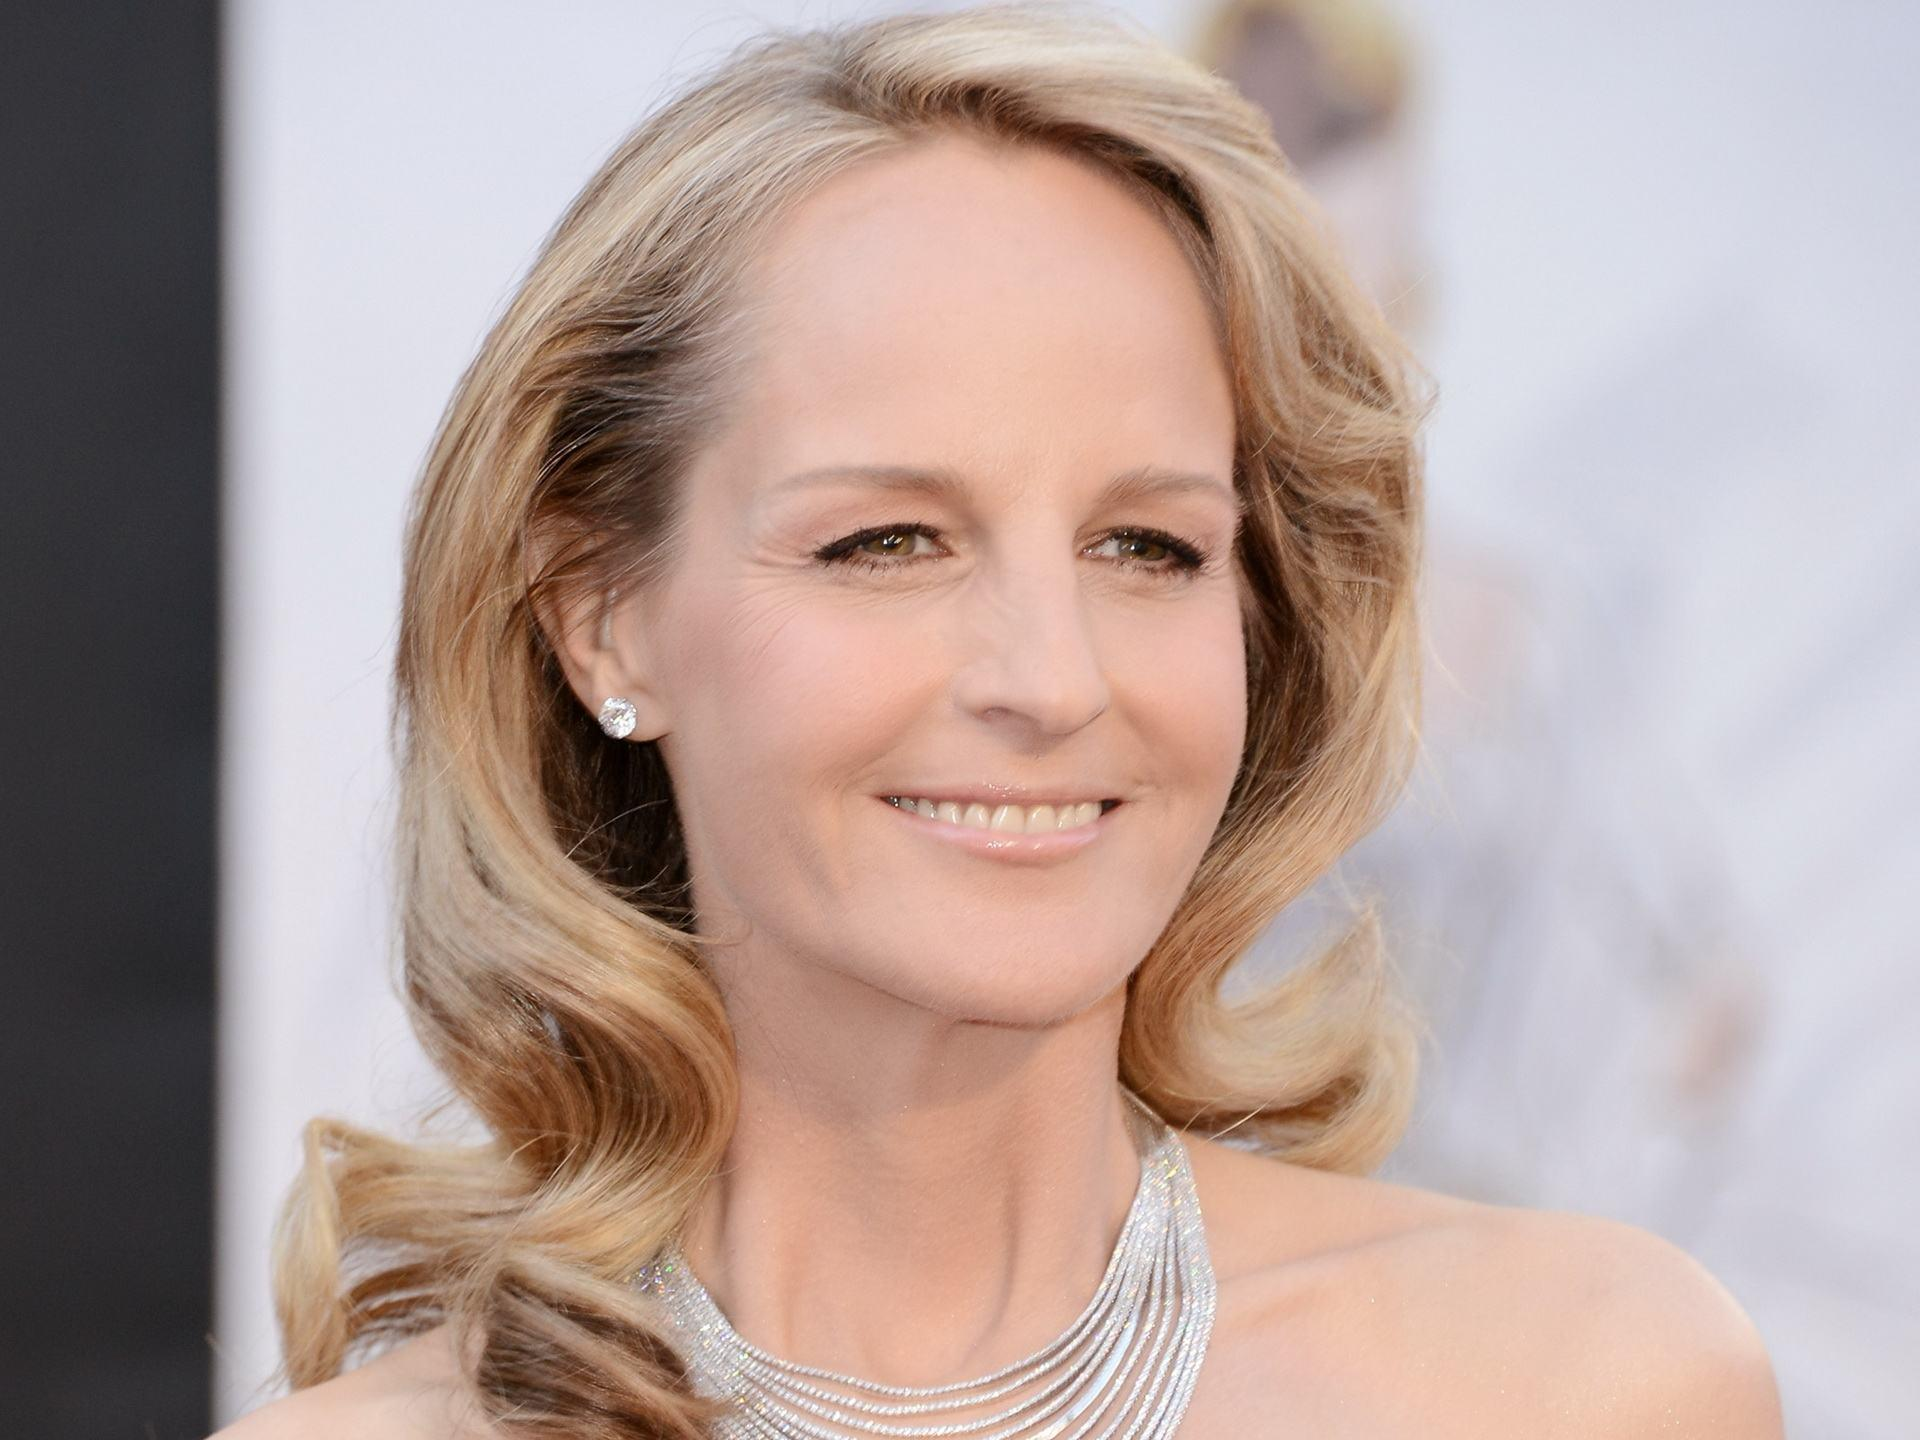 Download Helen Hunt Widescreen Desktop Wallpapers 1336 1920x1440 px